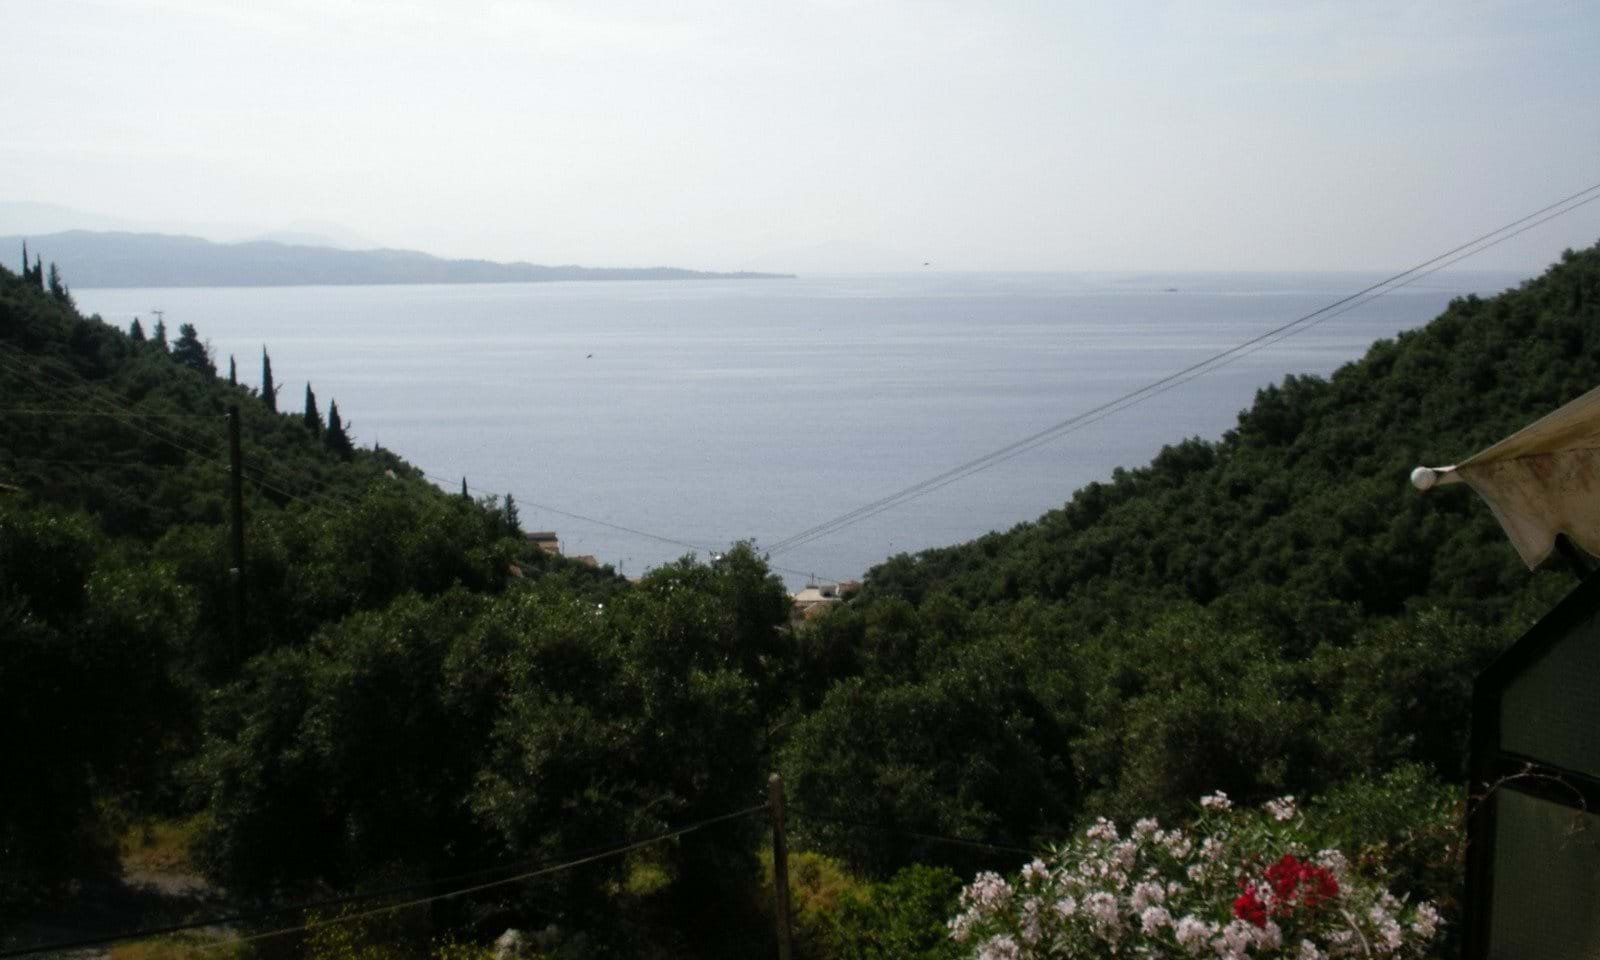 Kaminaki property for sale in Corfu